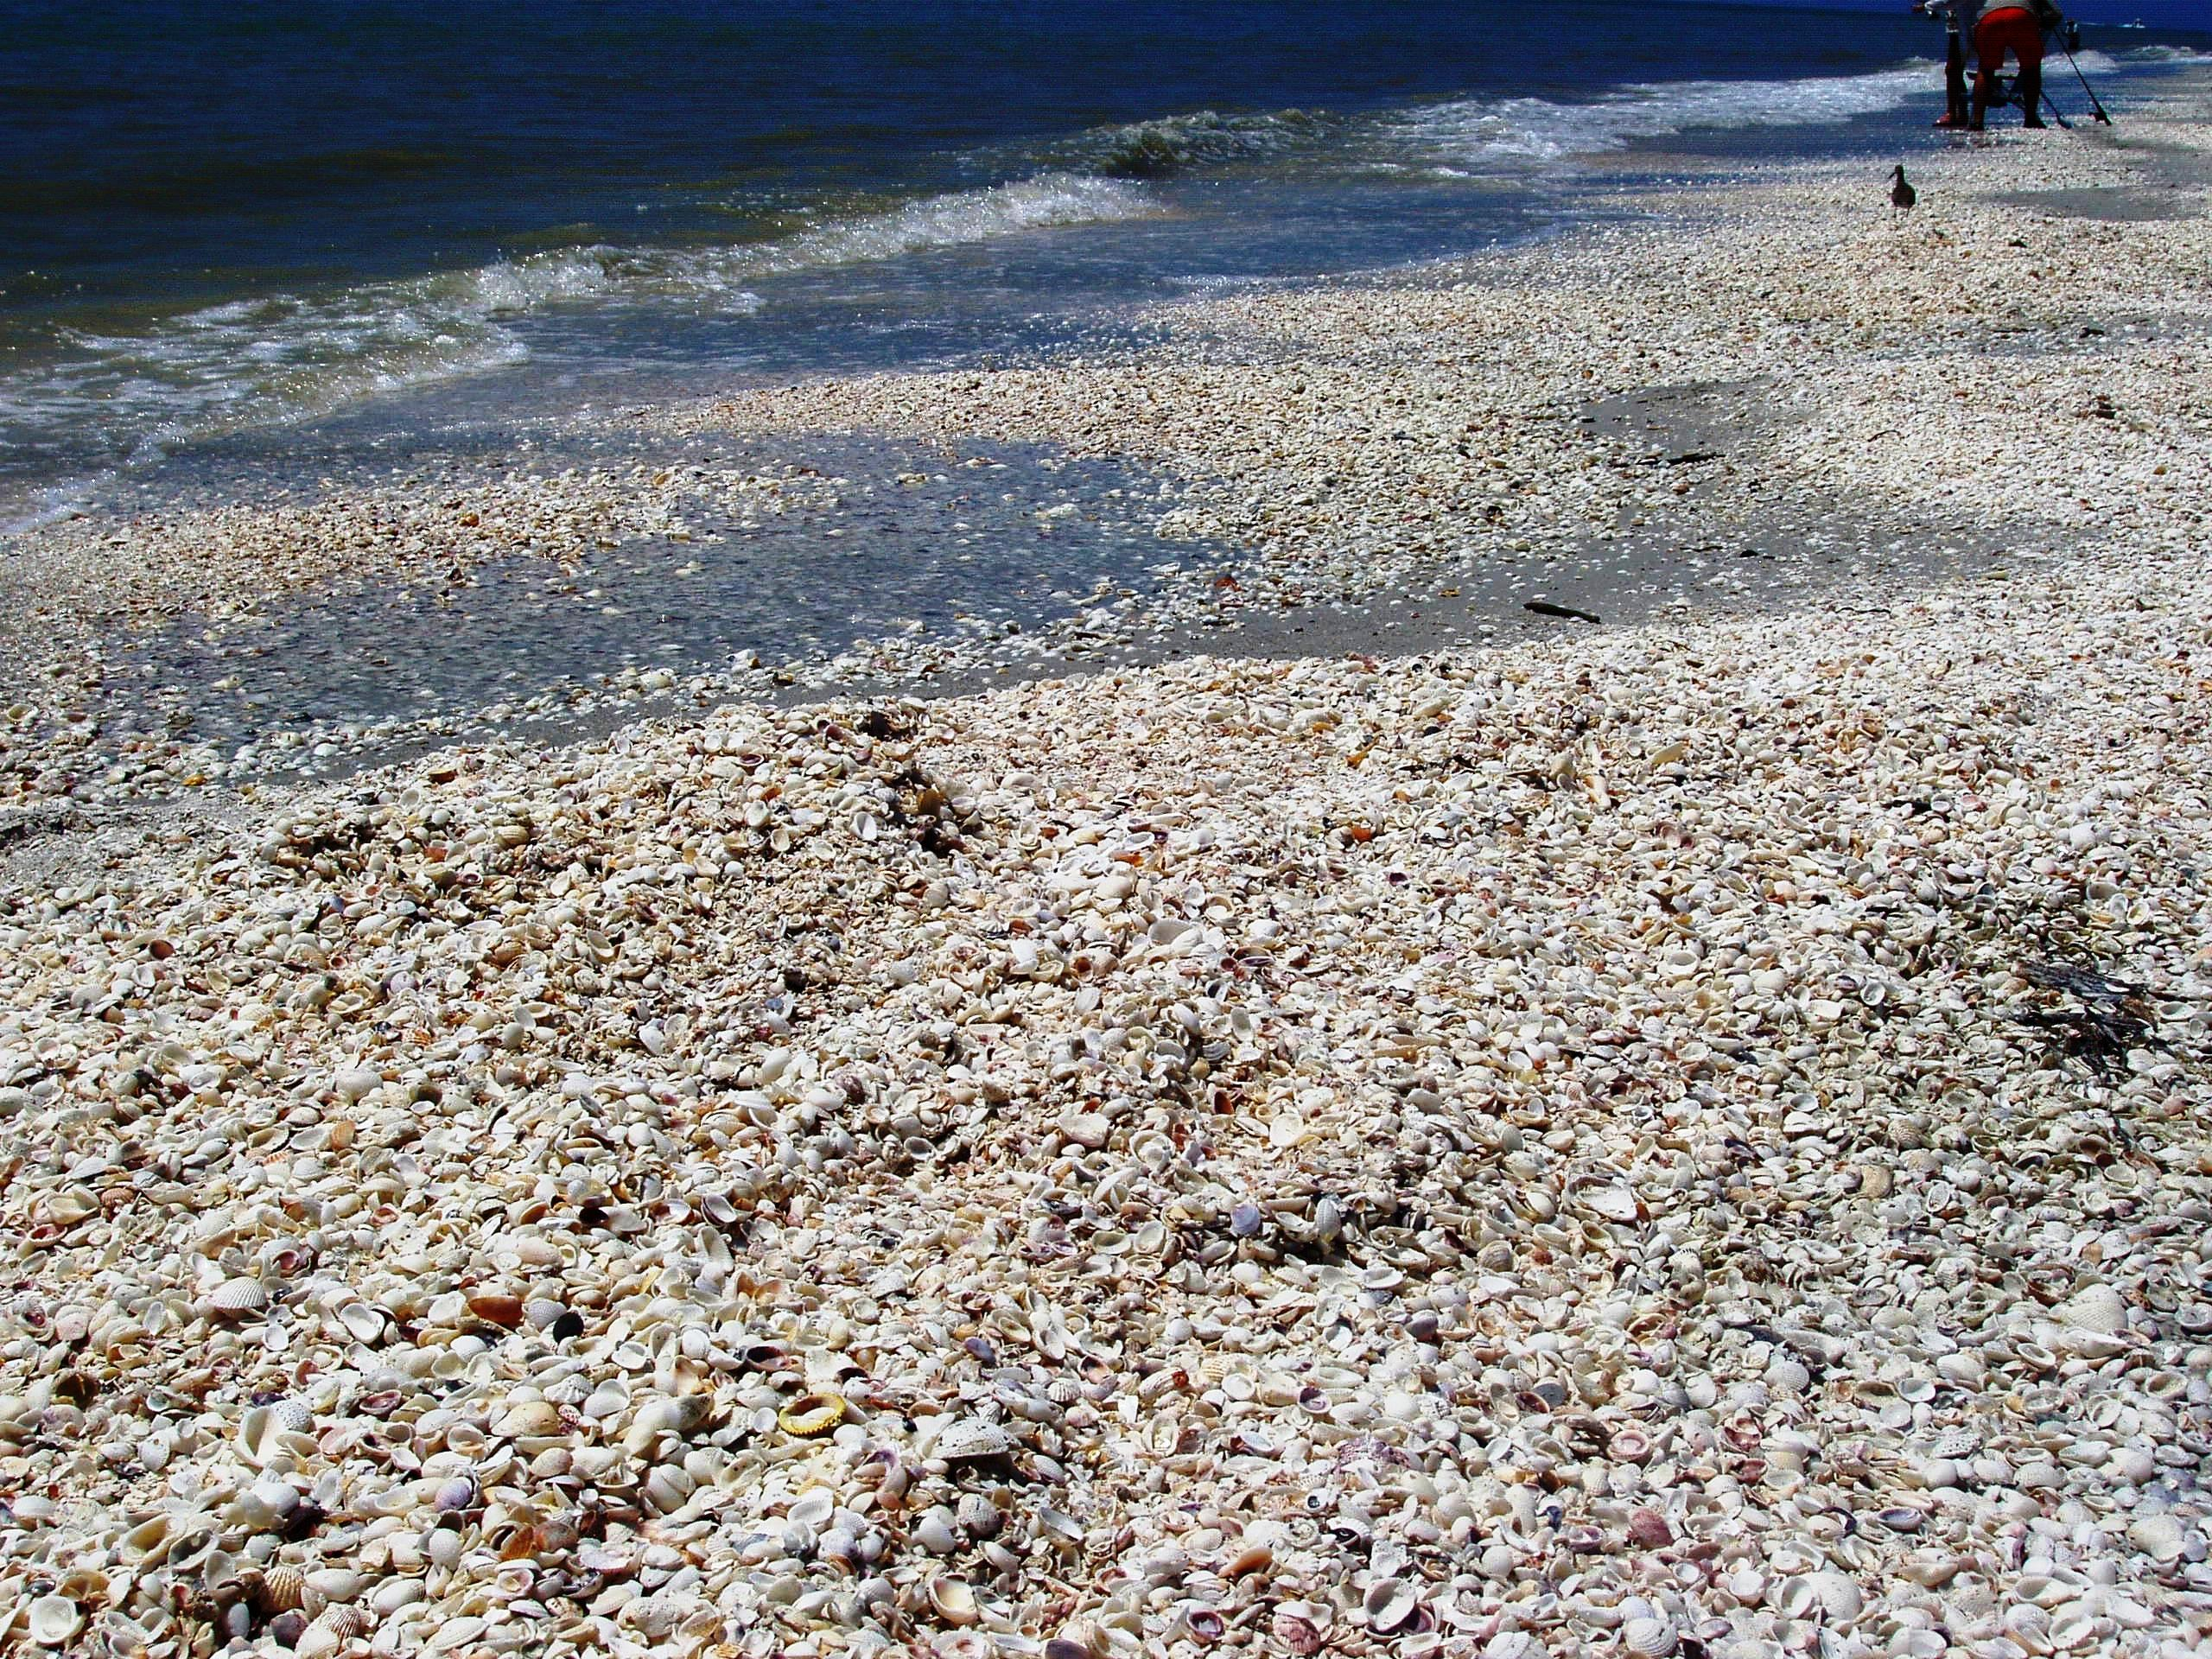 Sometimes Gulf Currents Produce Large Collections of Seashells